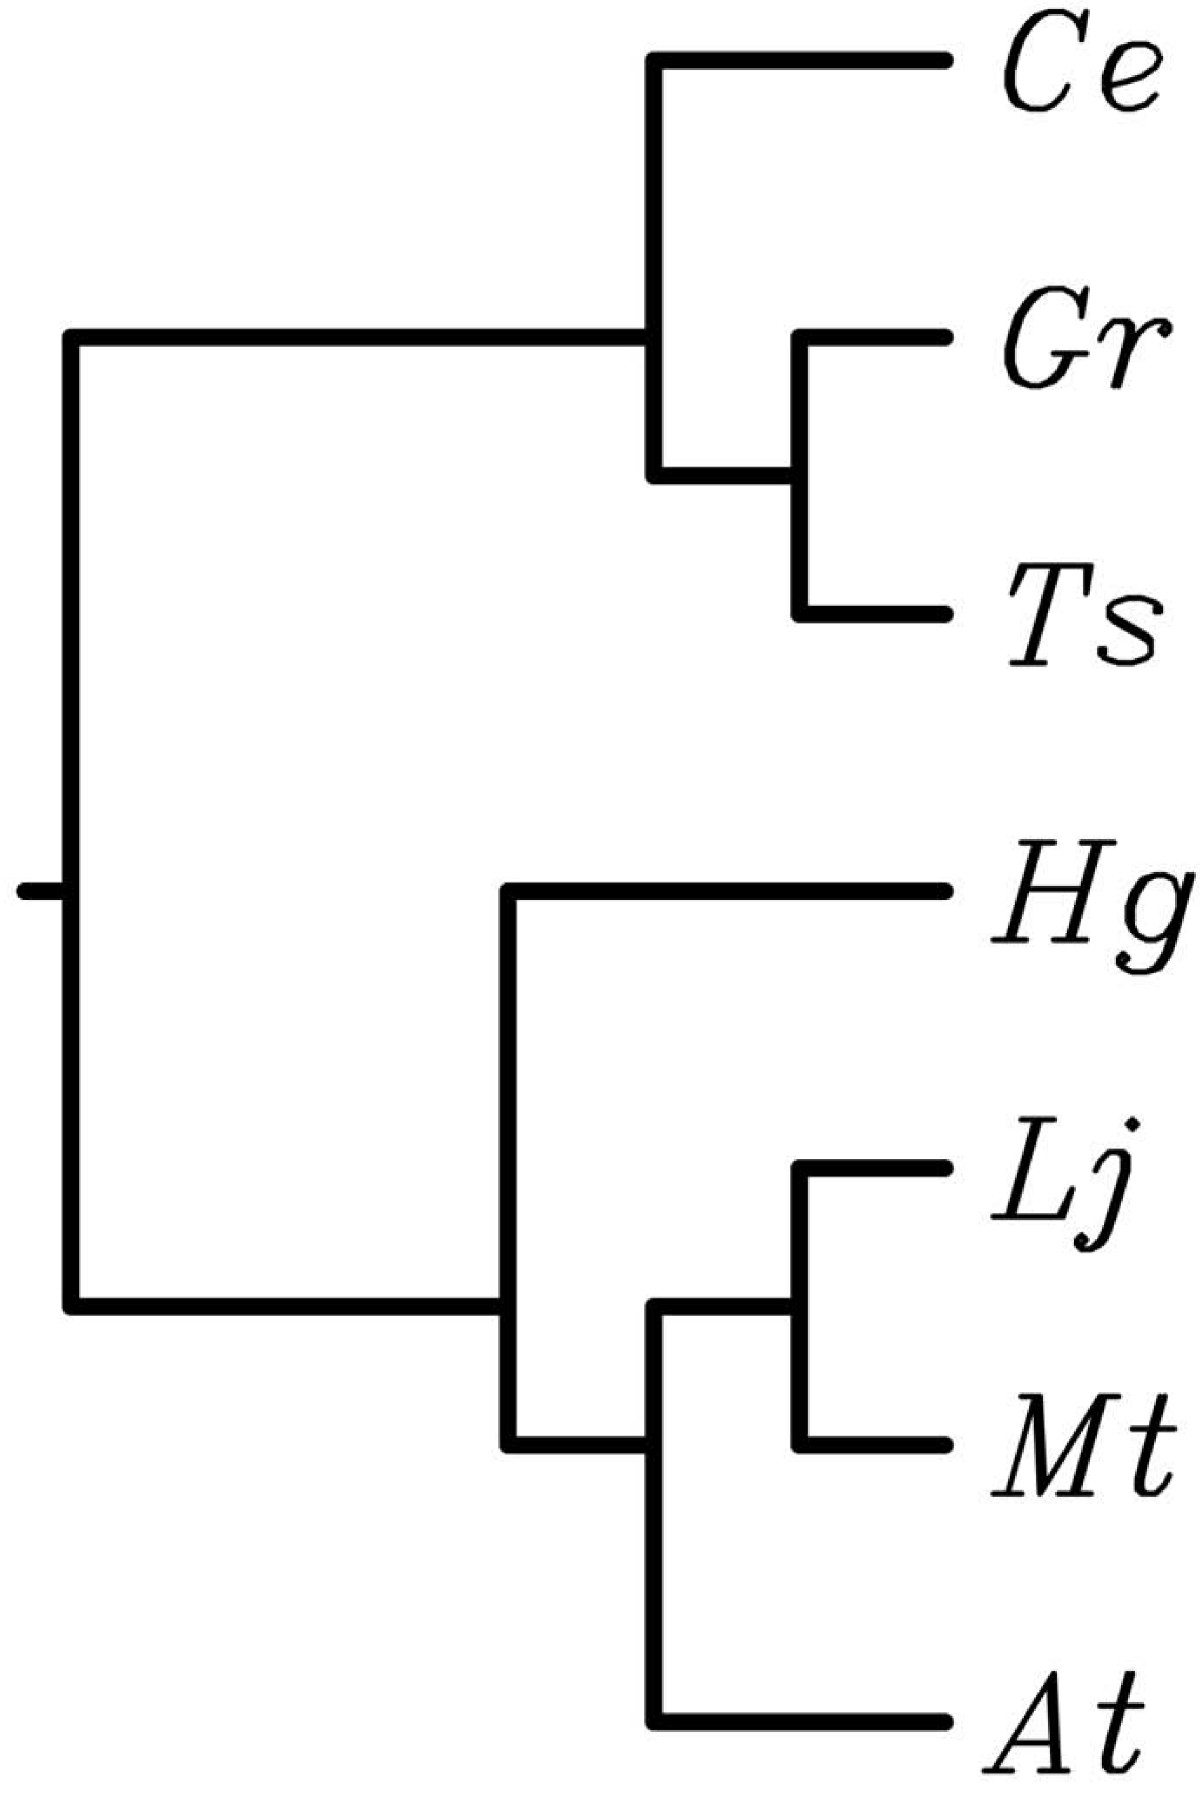 https://static-content.springer.com/image/art%3A10.1186%2F1471-2164-10-58/MediaObjects/12864_2008_Article_1942_Fig4_HTML.jpg